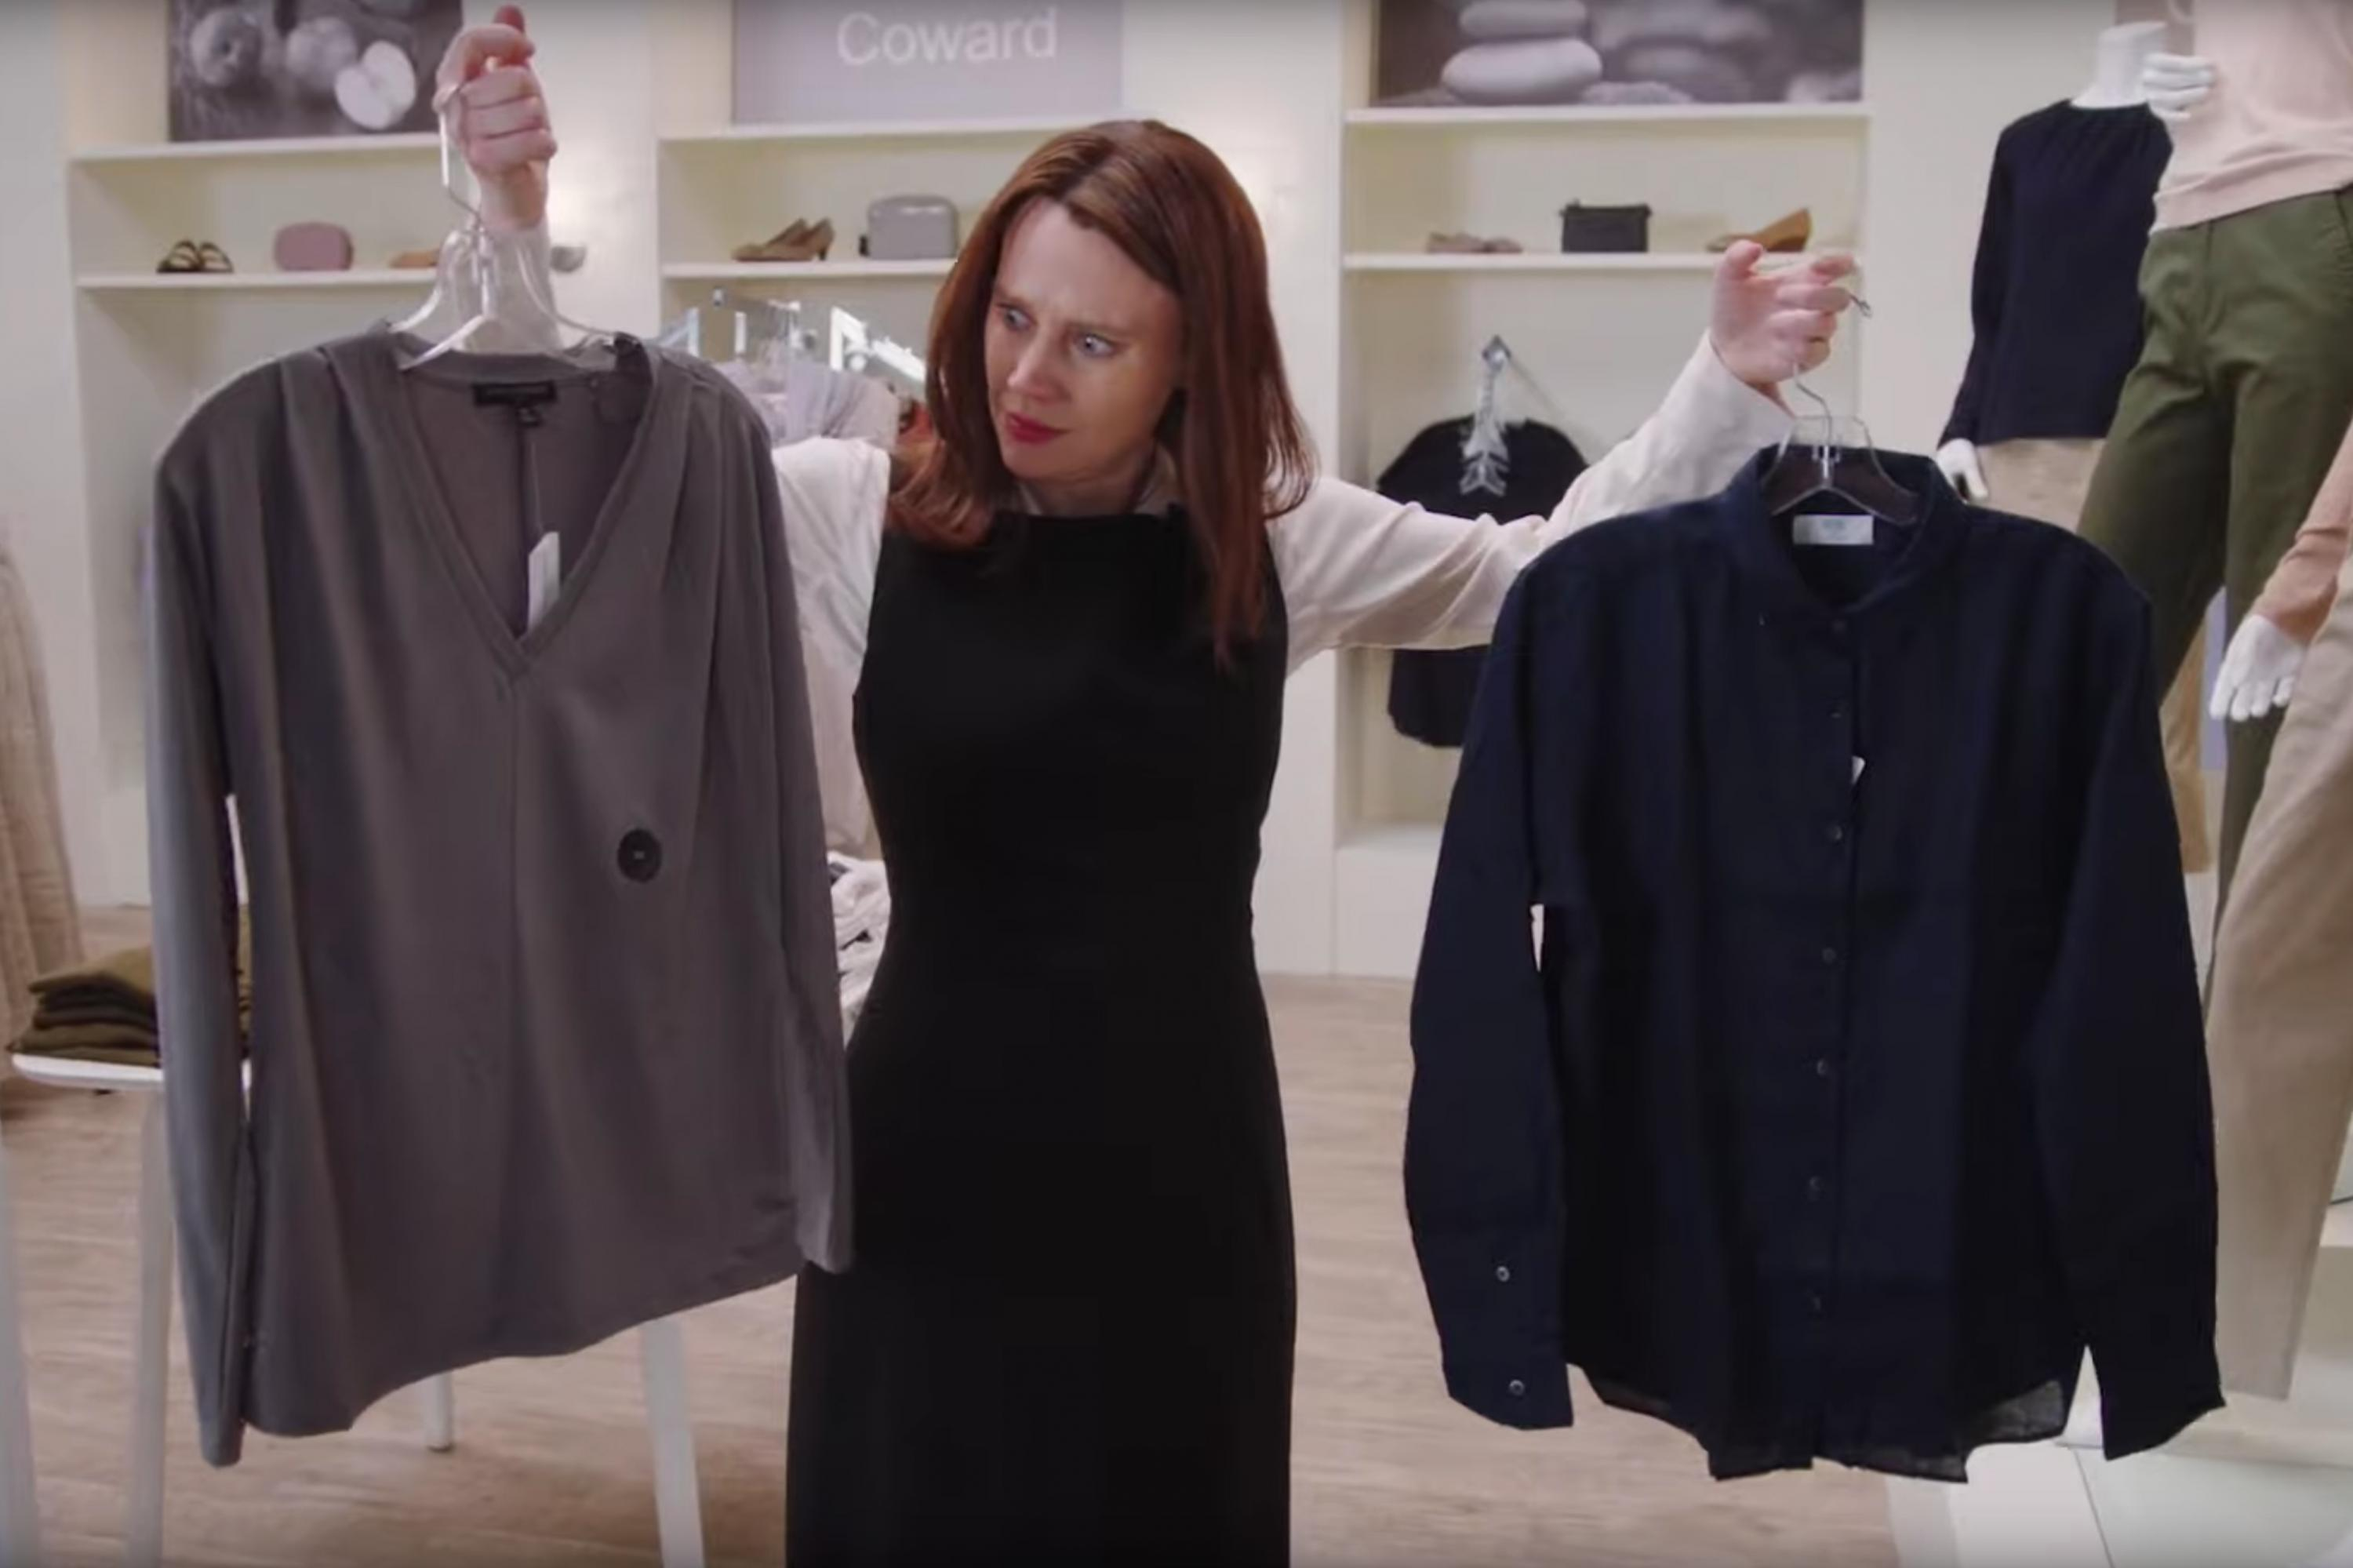 'Fashion Coward': Watch the 'SNL' commercial spoof that takes on Ann Taylor